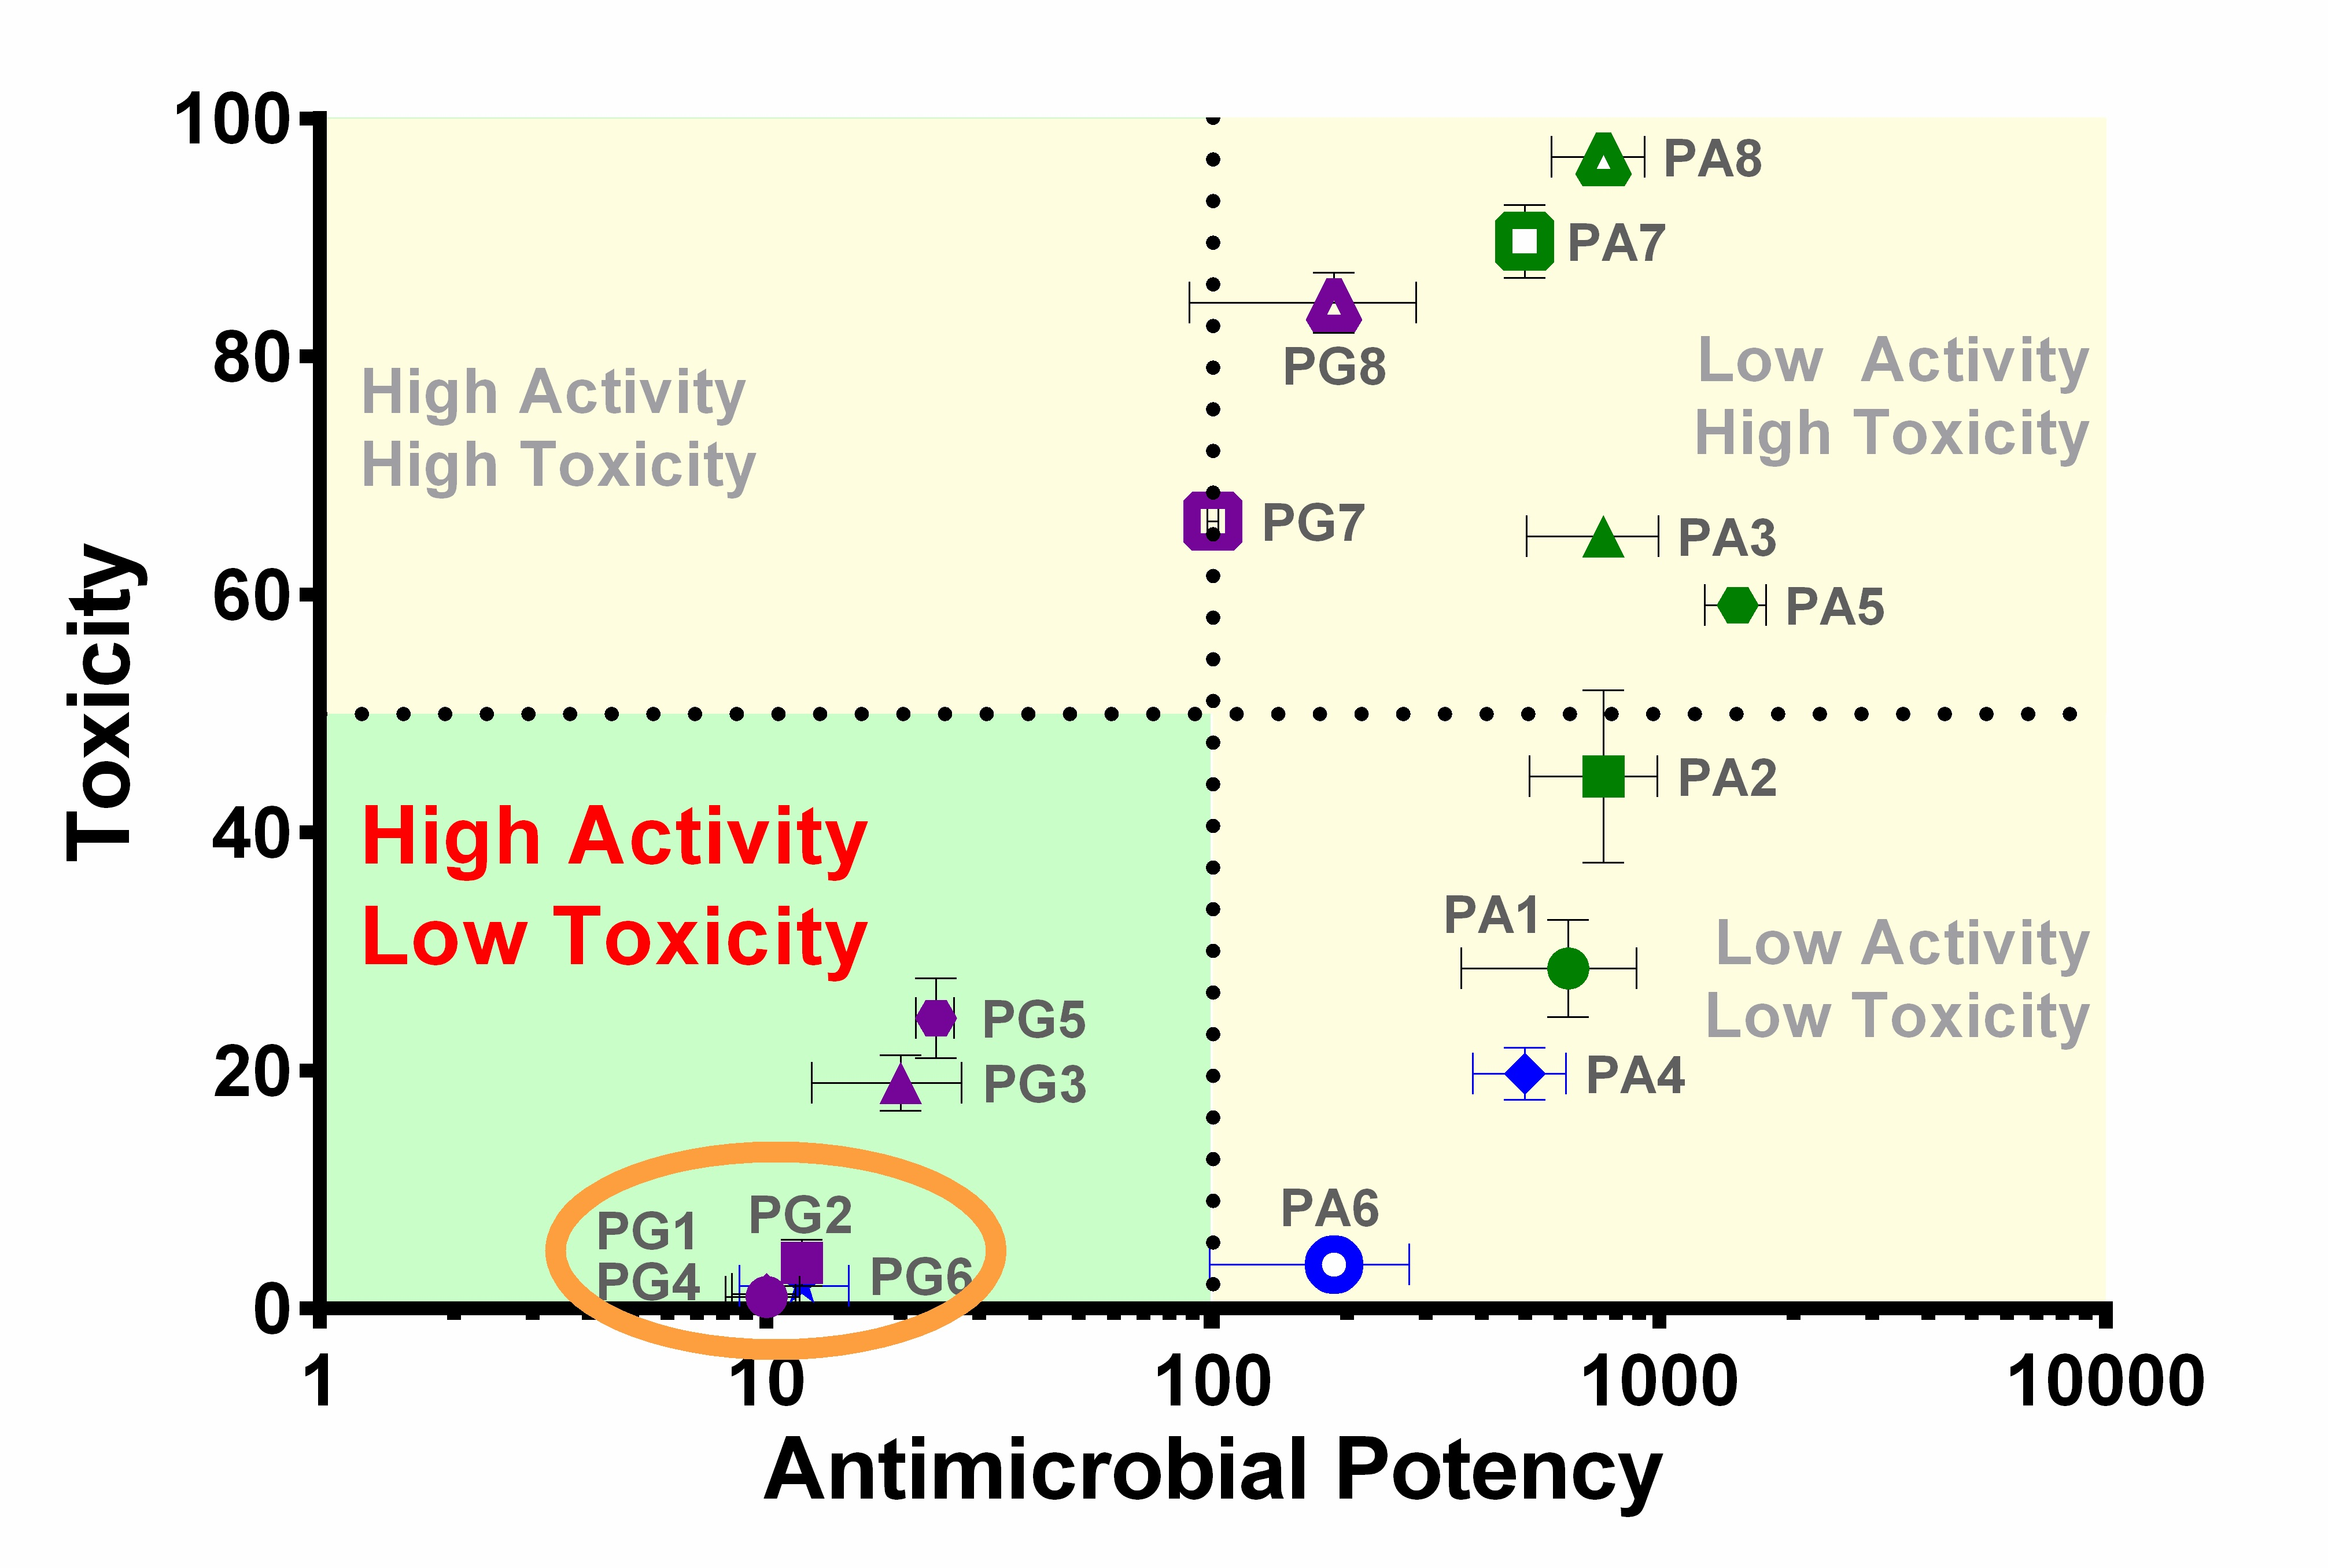 Graph plotting candidates acording to toxicity and antimicrobial potency